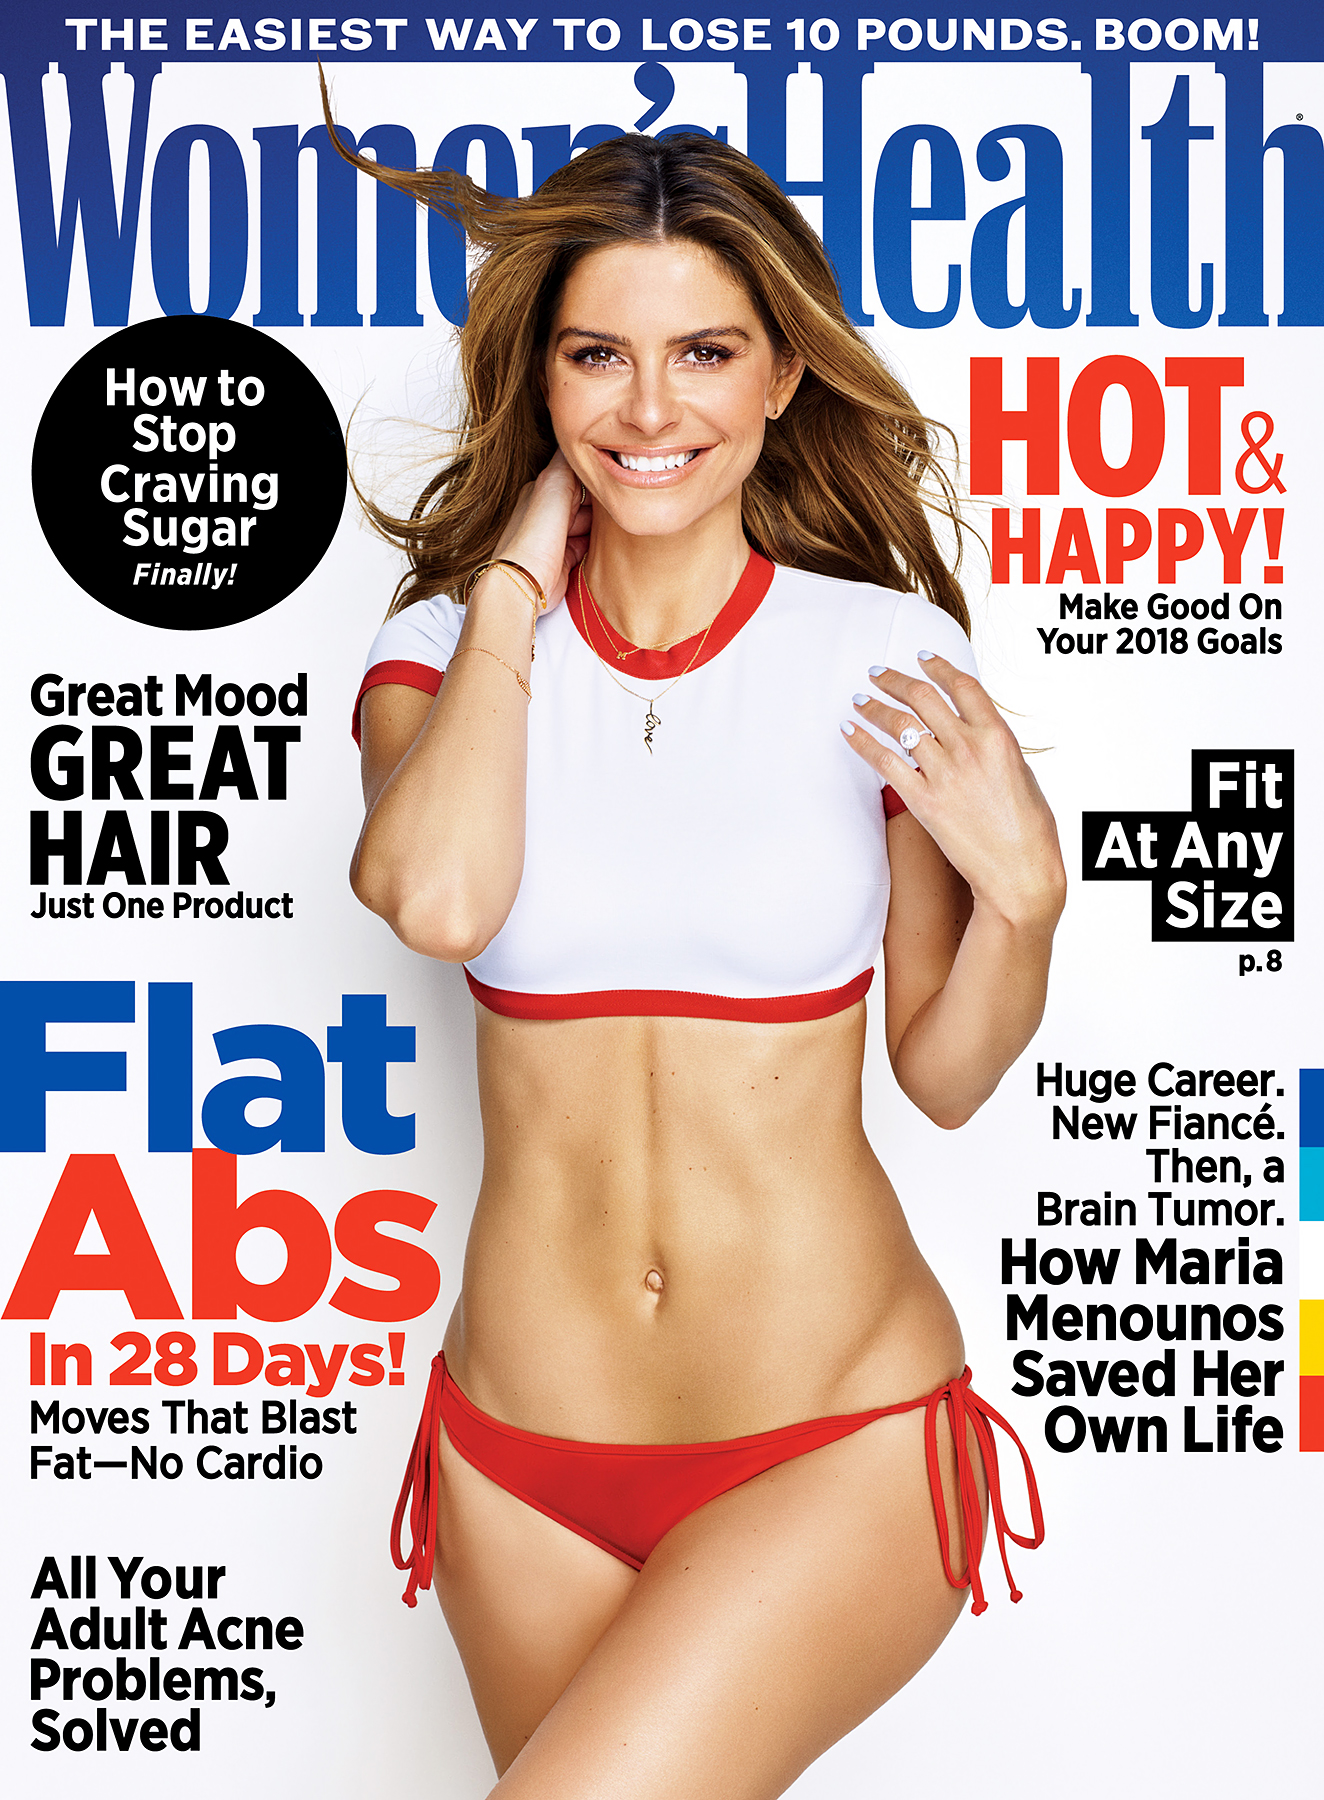 Maria Menounos on the cover of Women's Health